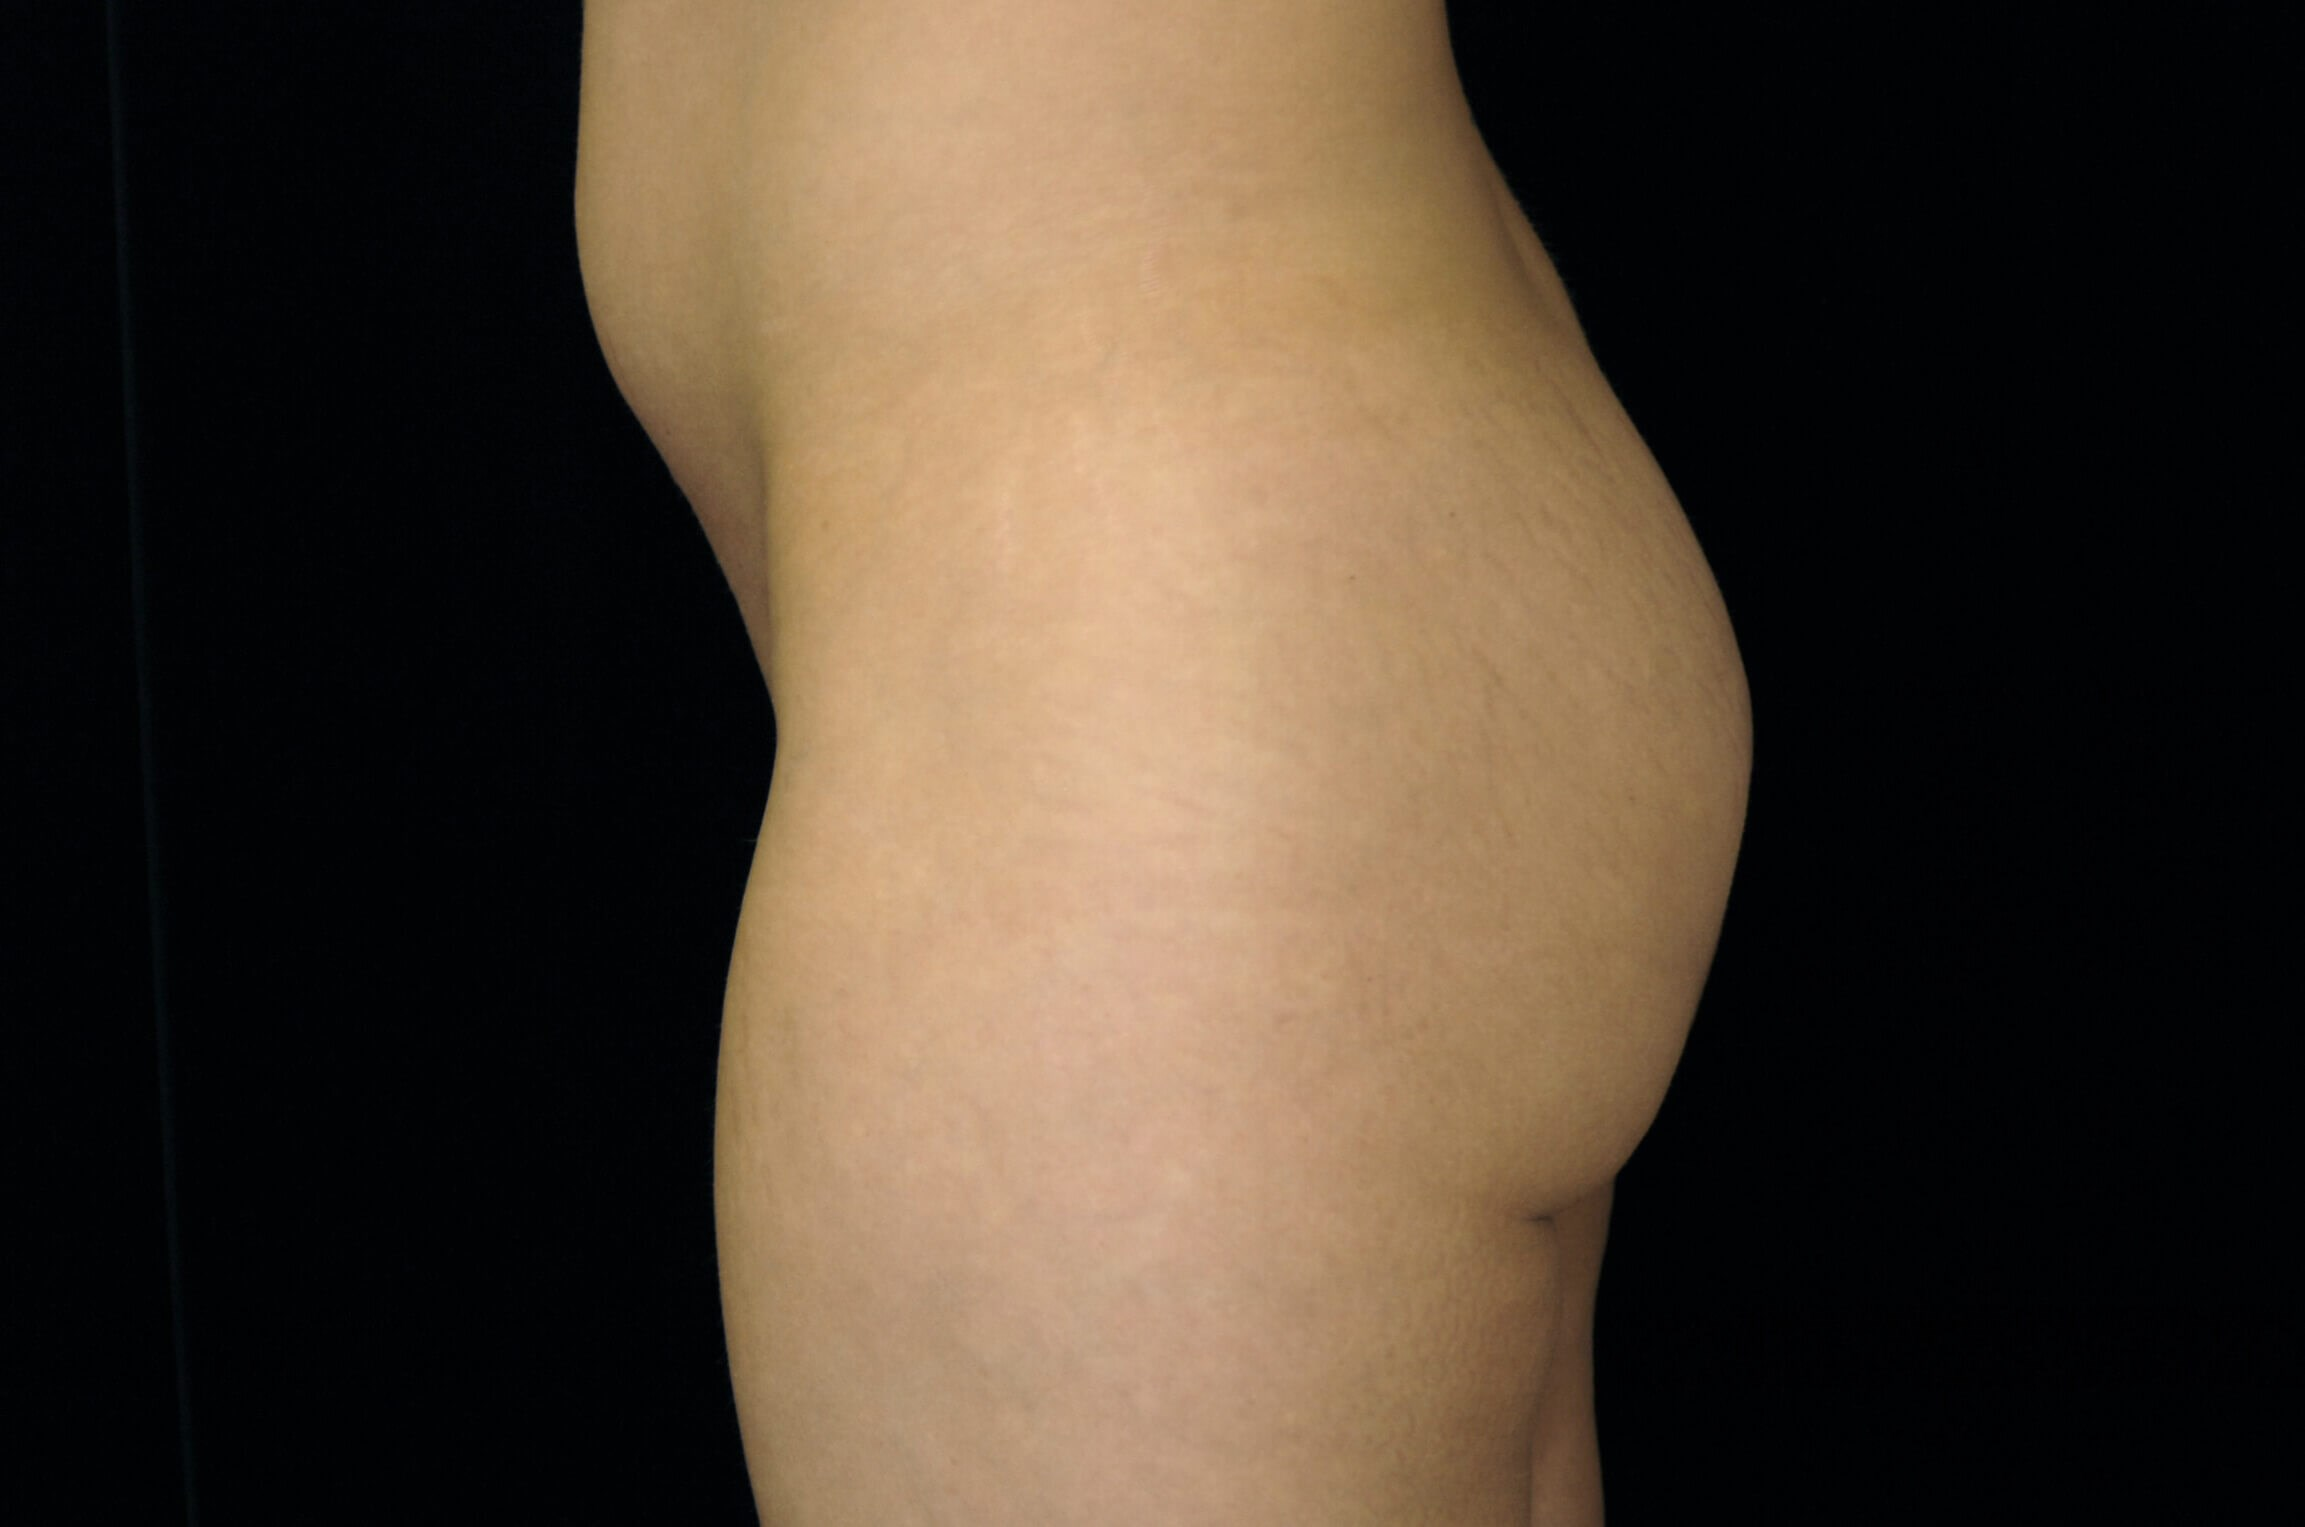 DALLAS WOMAN HAS BUTTOCK AUGMENTATION WITH IMPLANTS